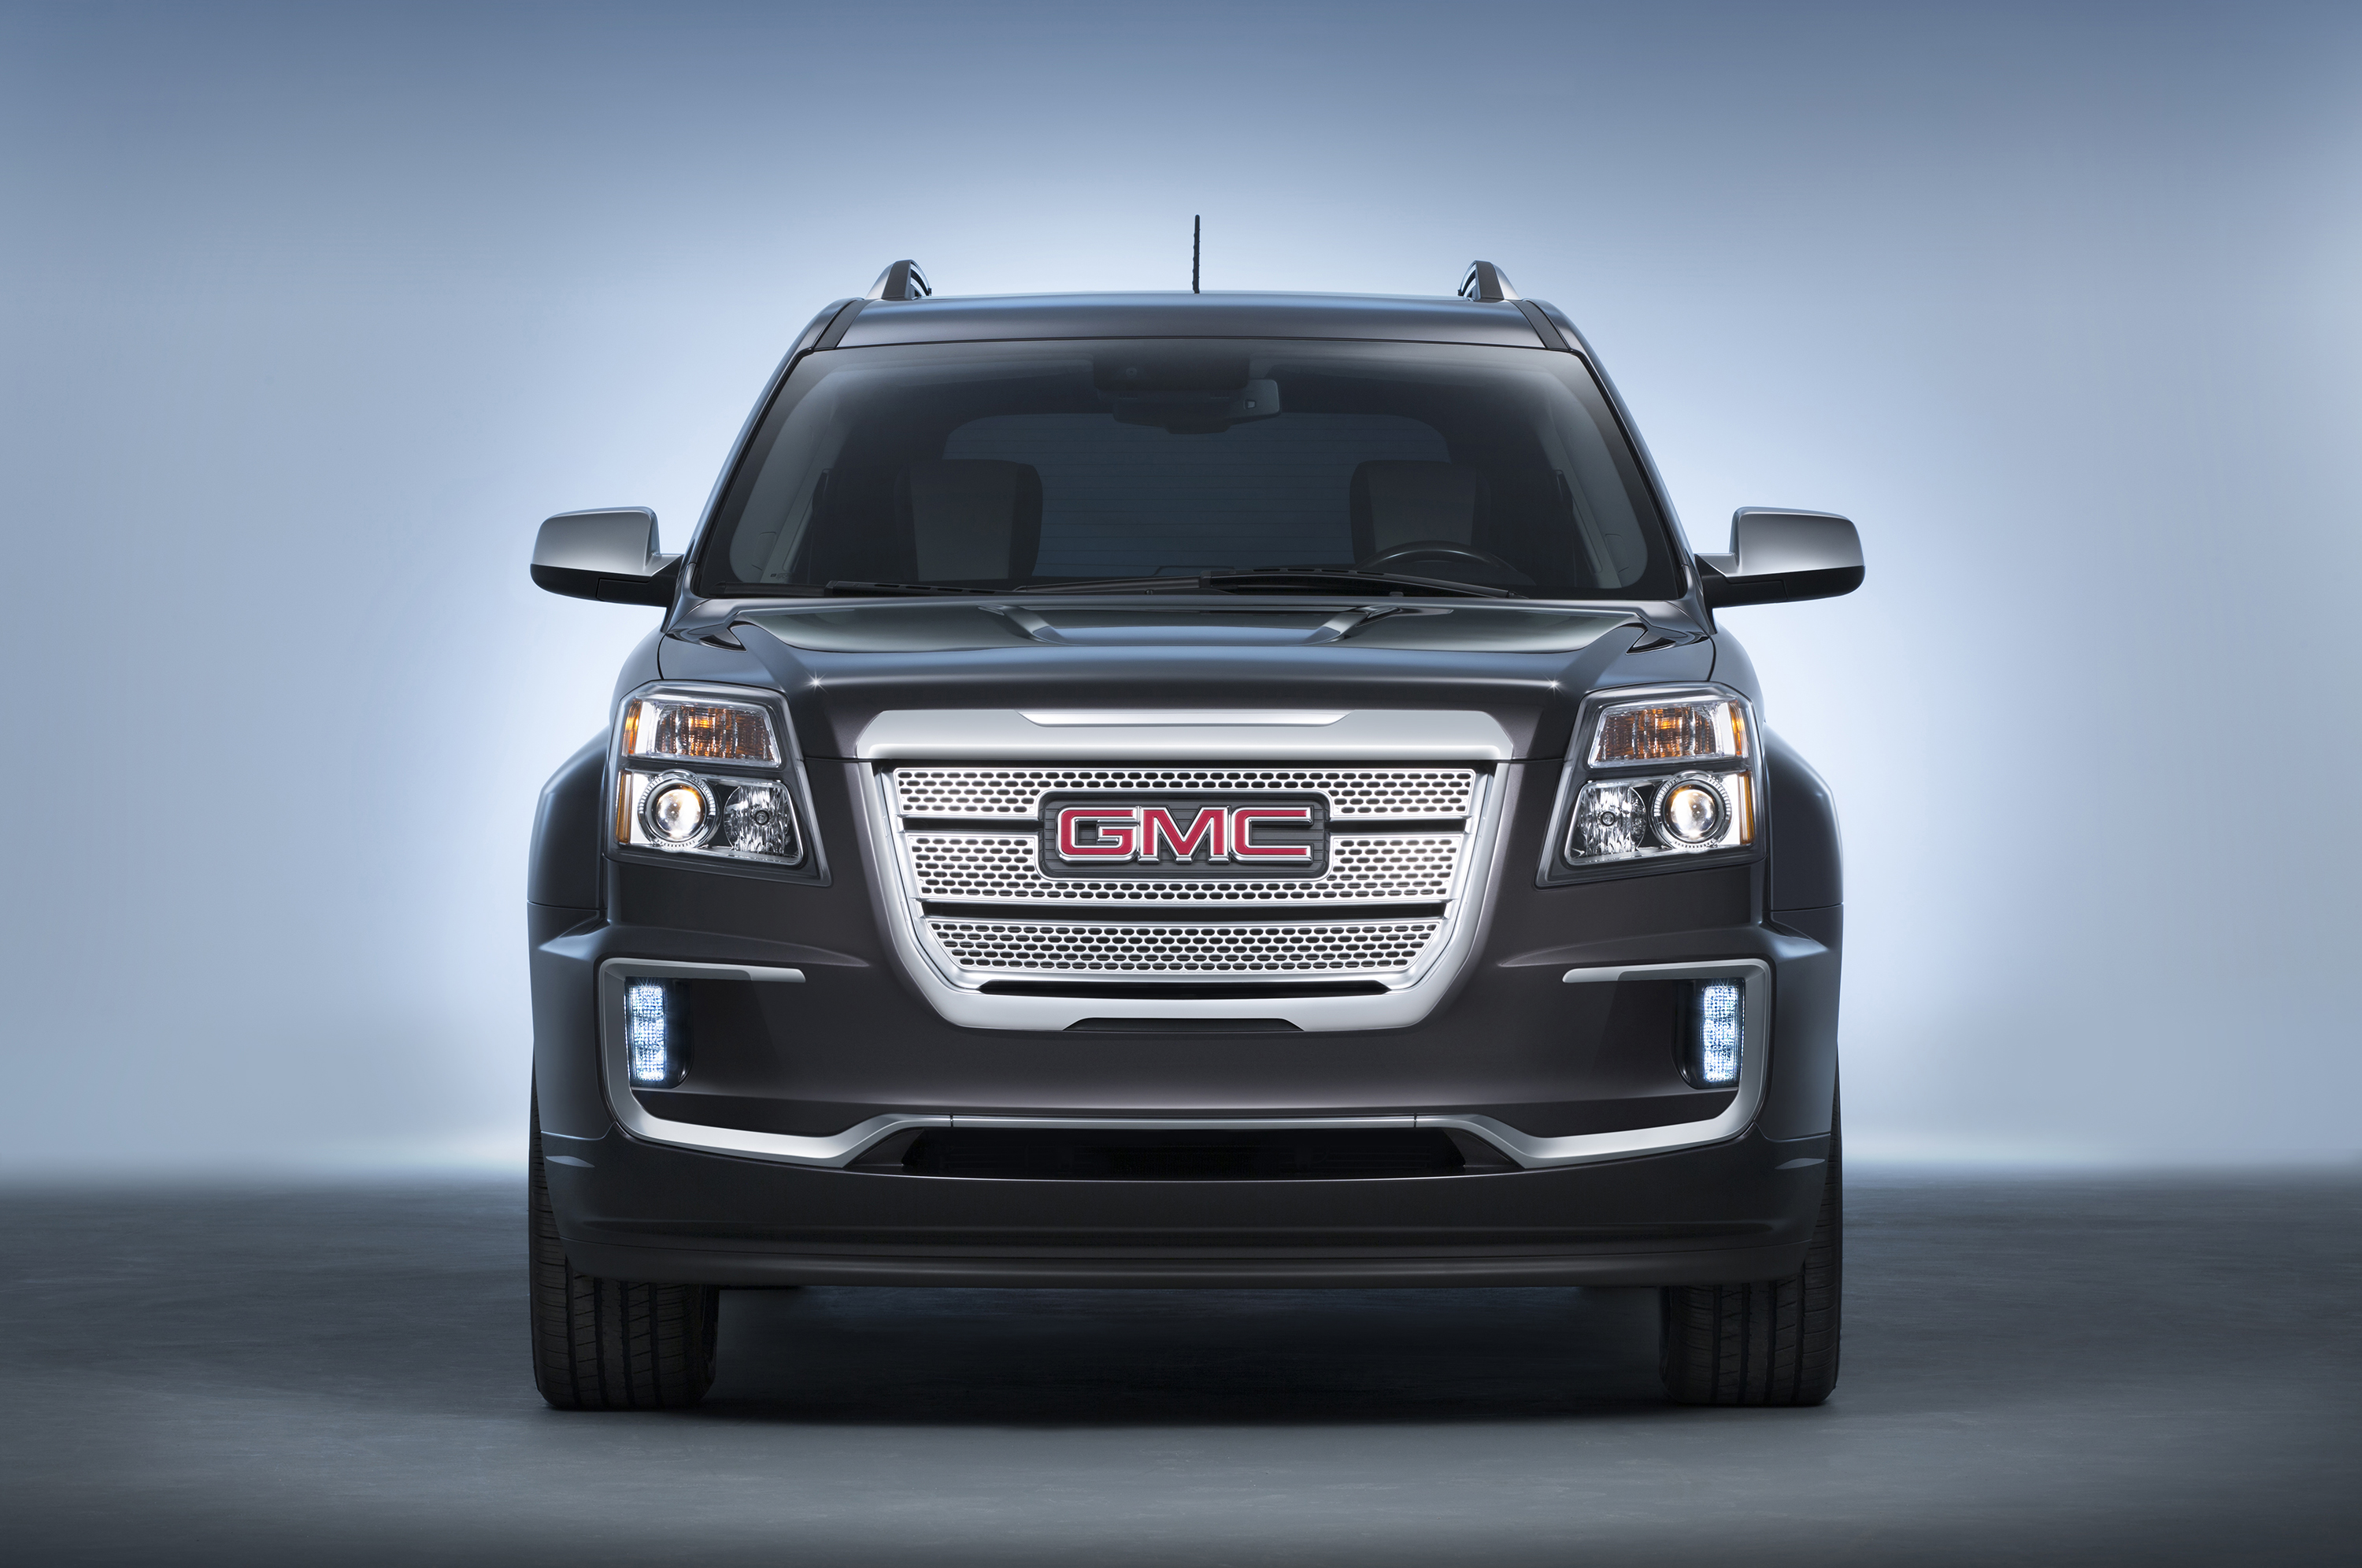 sl gmc terrain make black history photo price